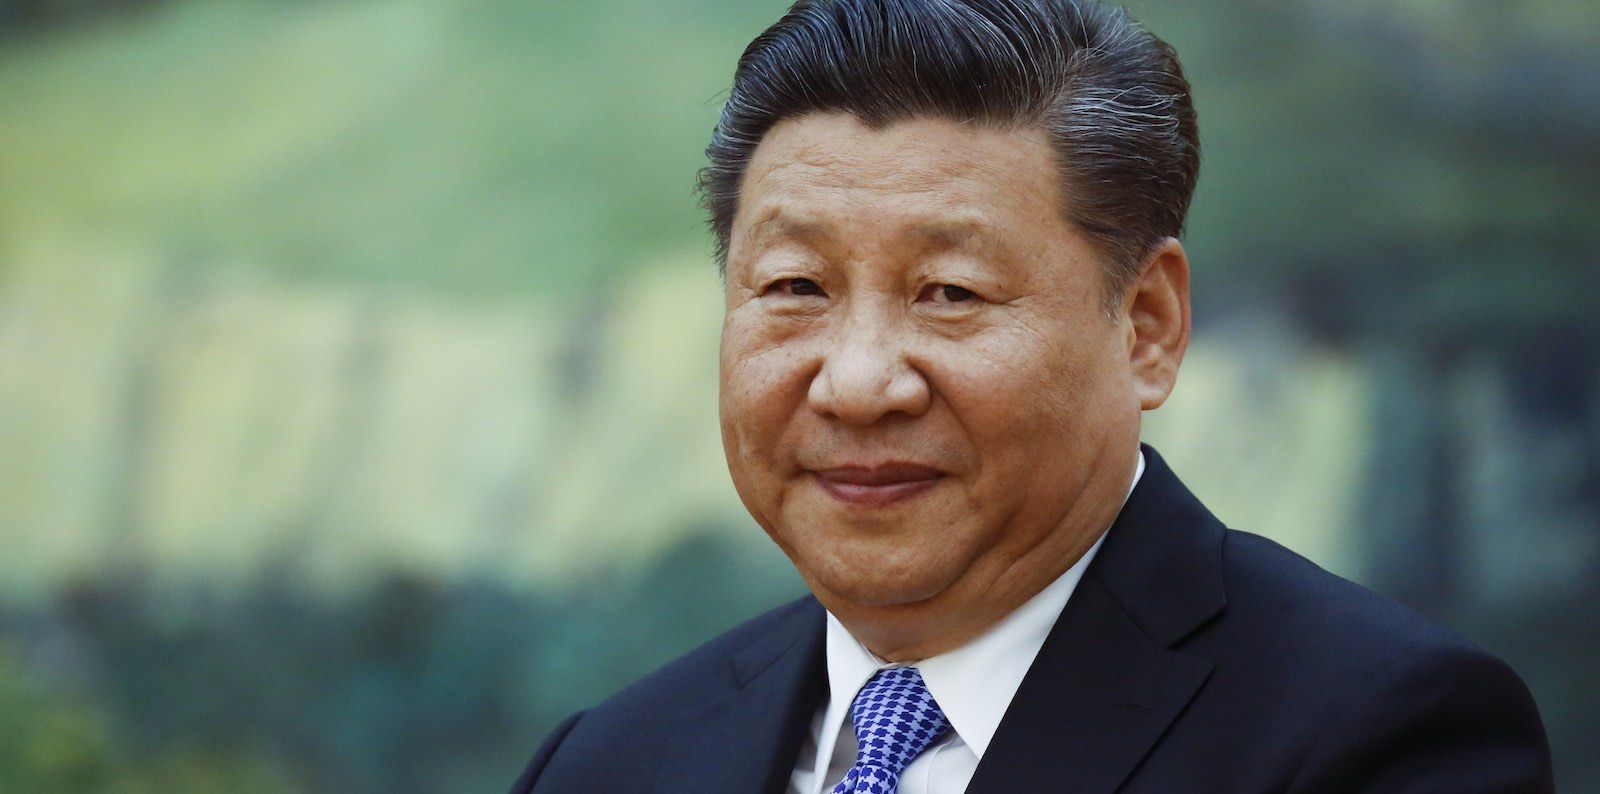 Chinese President Xi Jinping in Beijing last month (Photo: Thomas Peter via Getty)